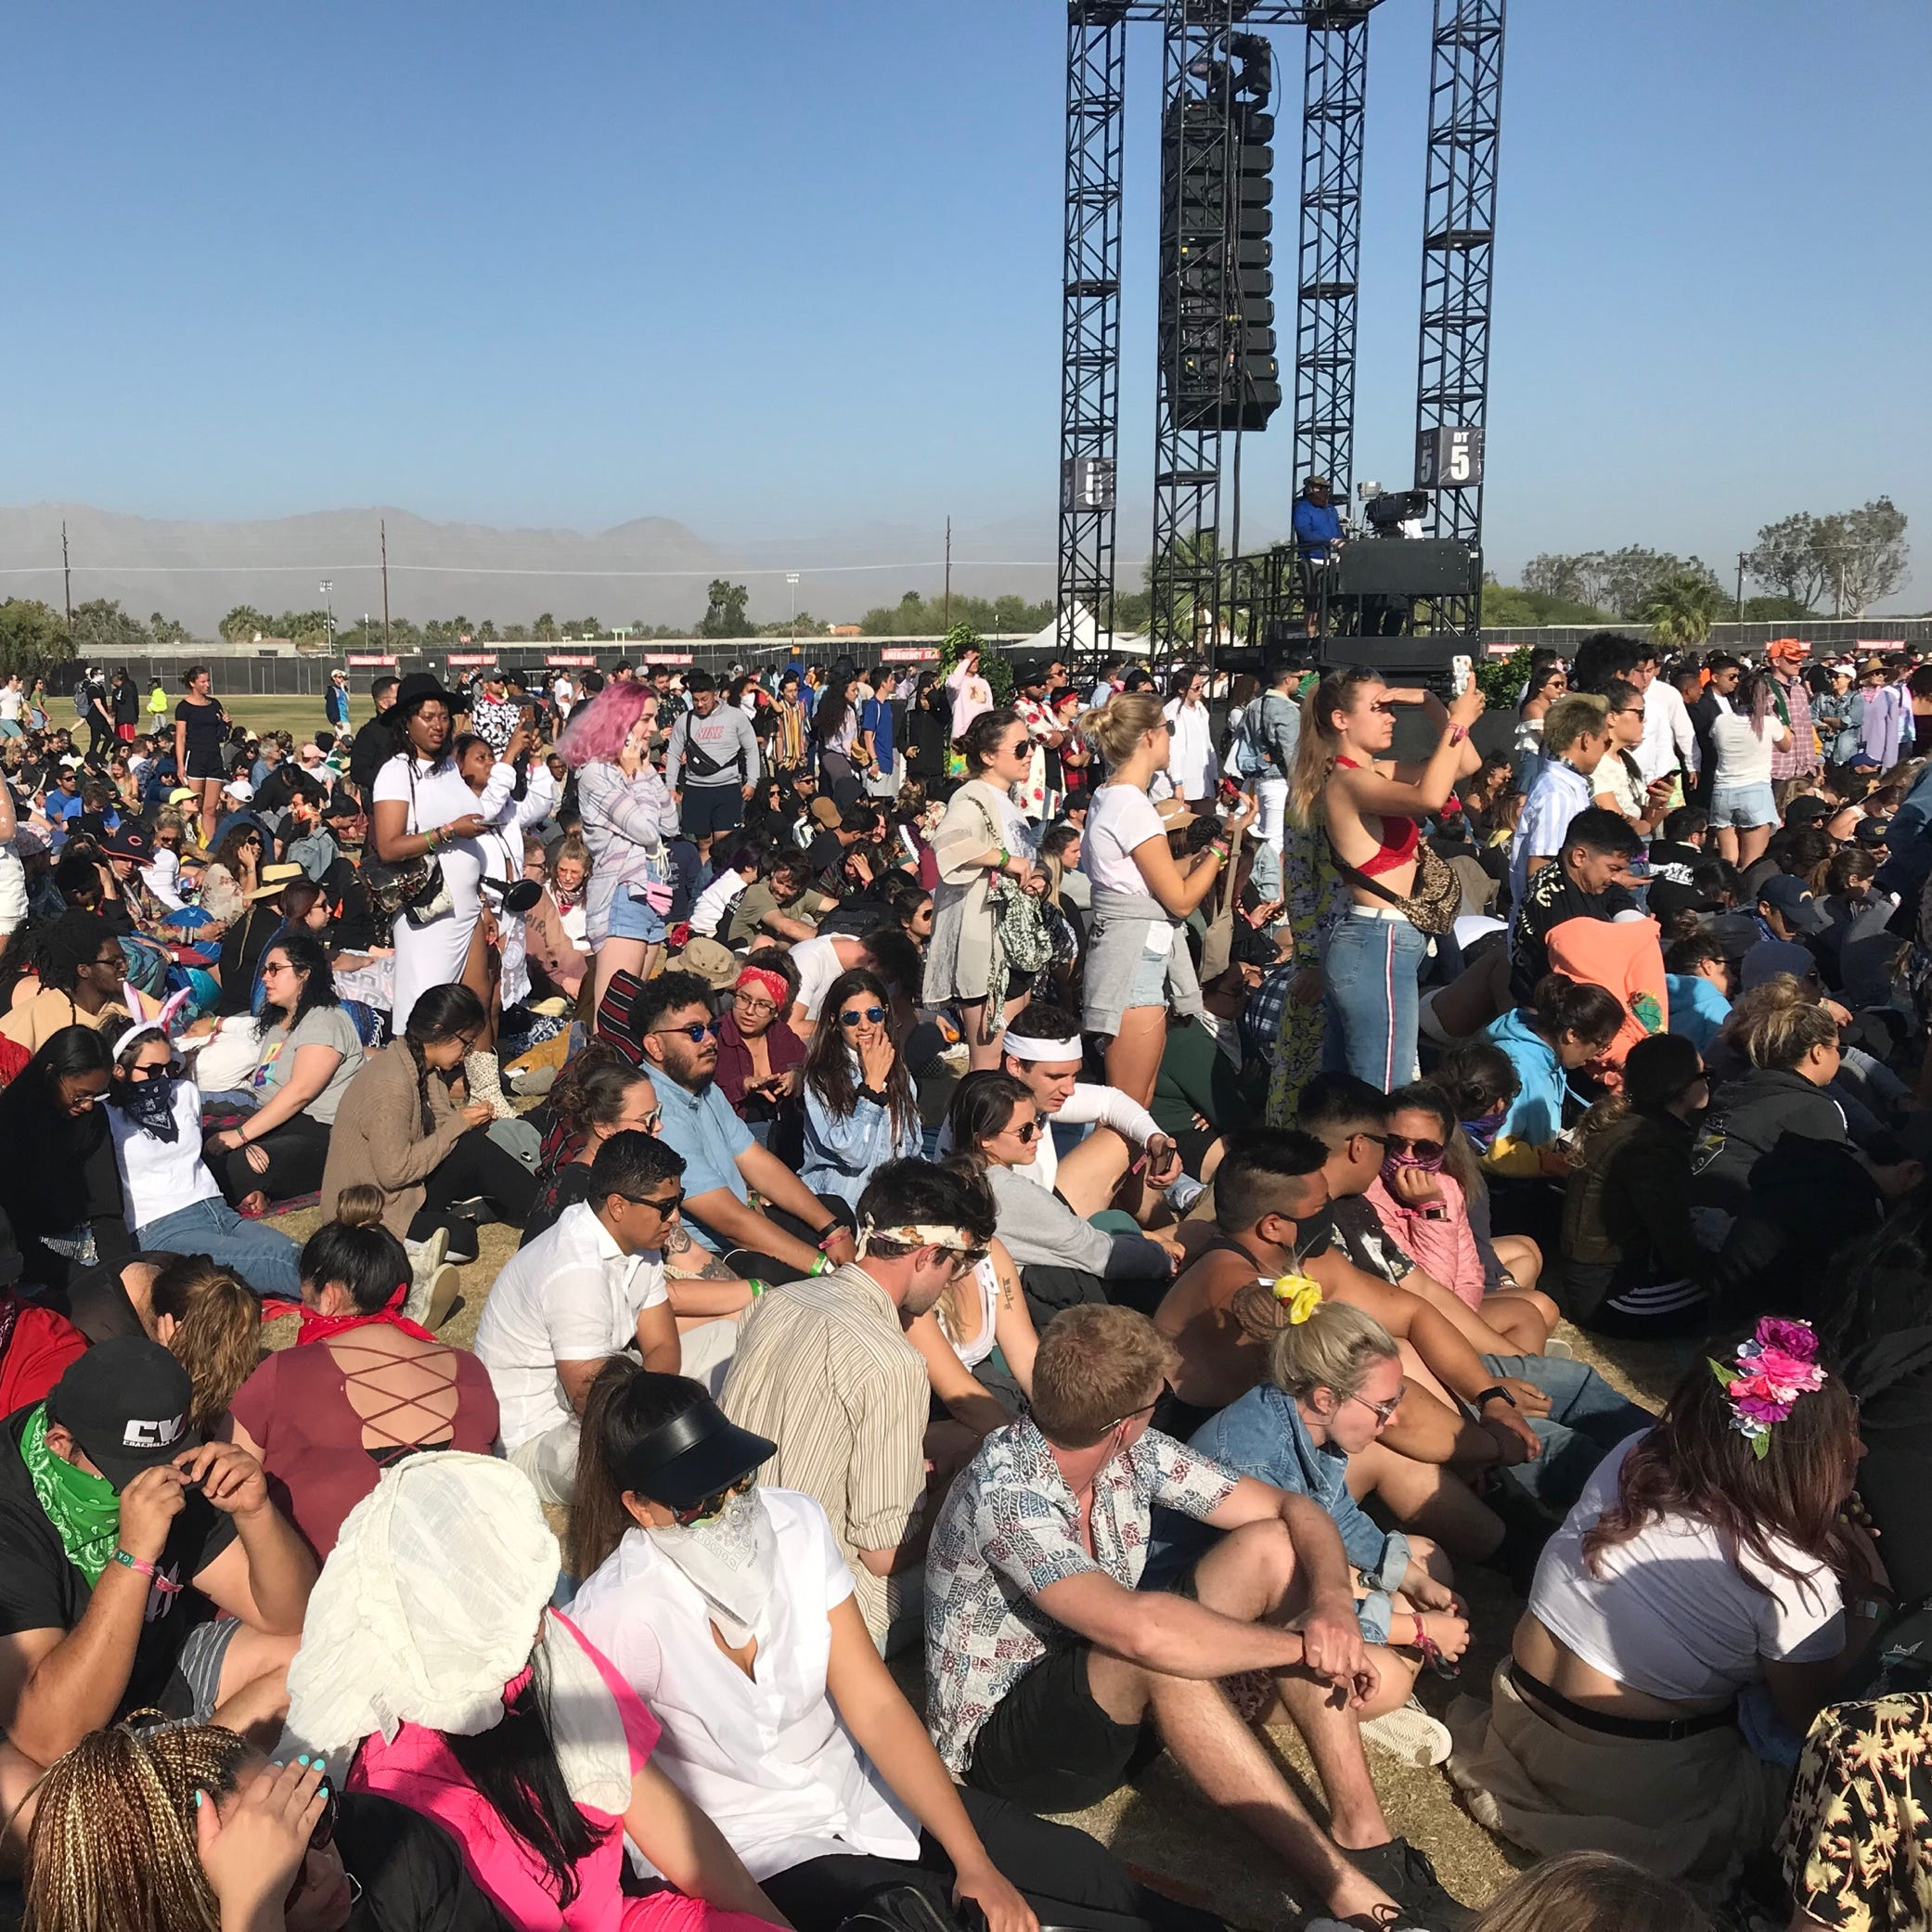 'Jesus Walks' at Coachella in Kanye West's historic Sunday Service